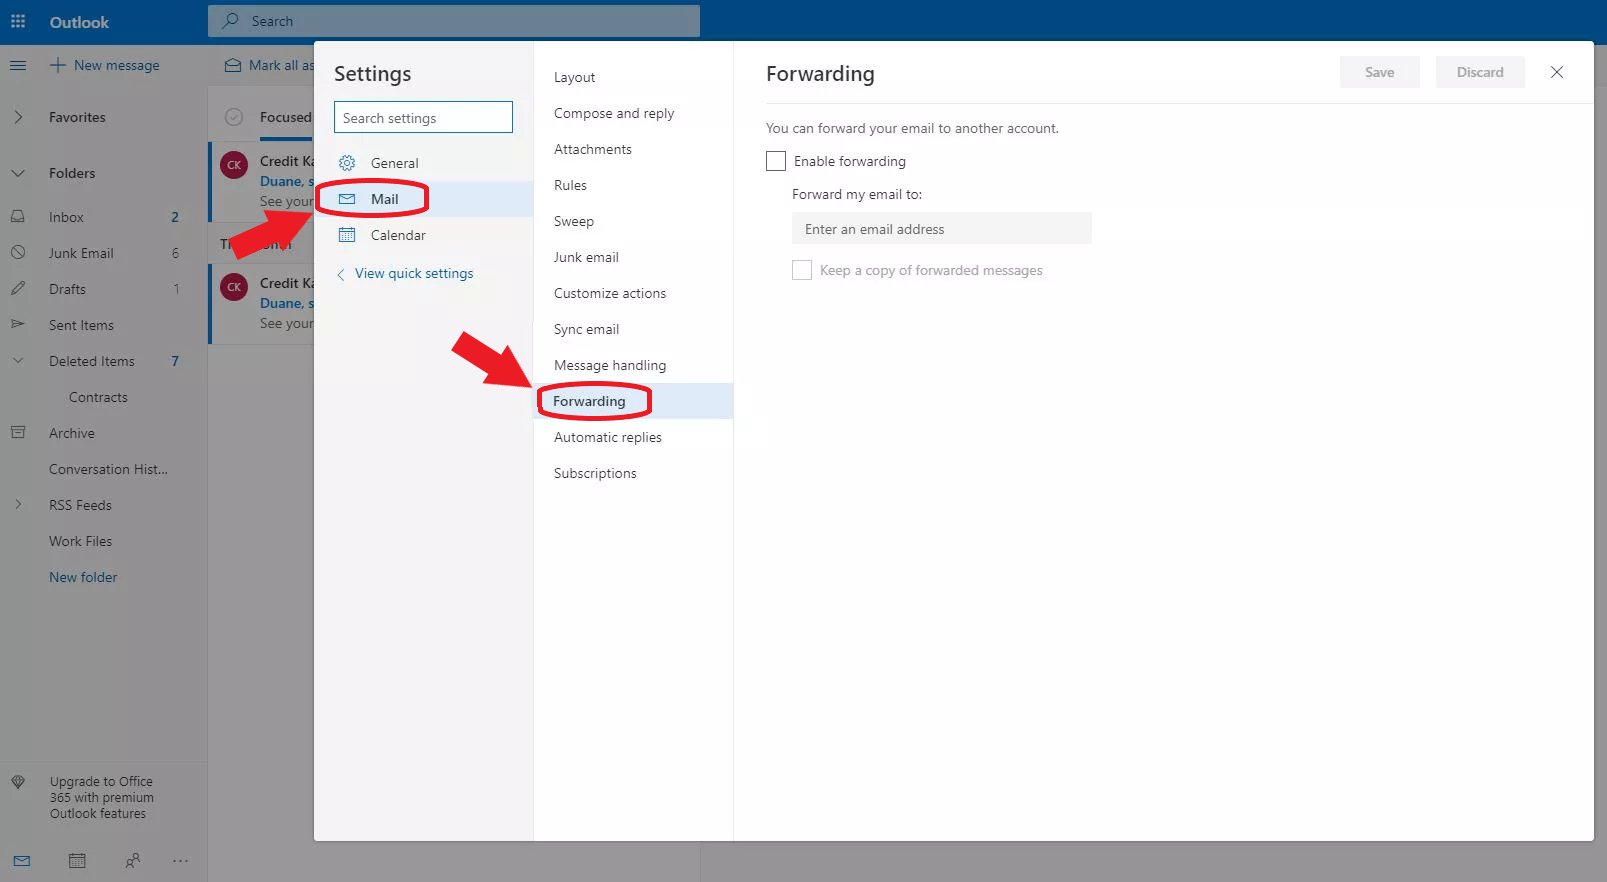 Finding the Mail Forwarding setting in Outlook.com